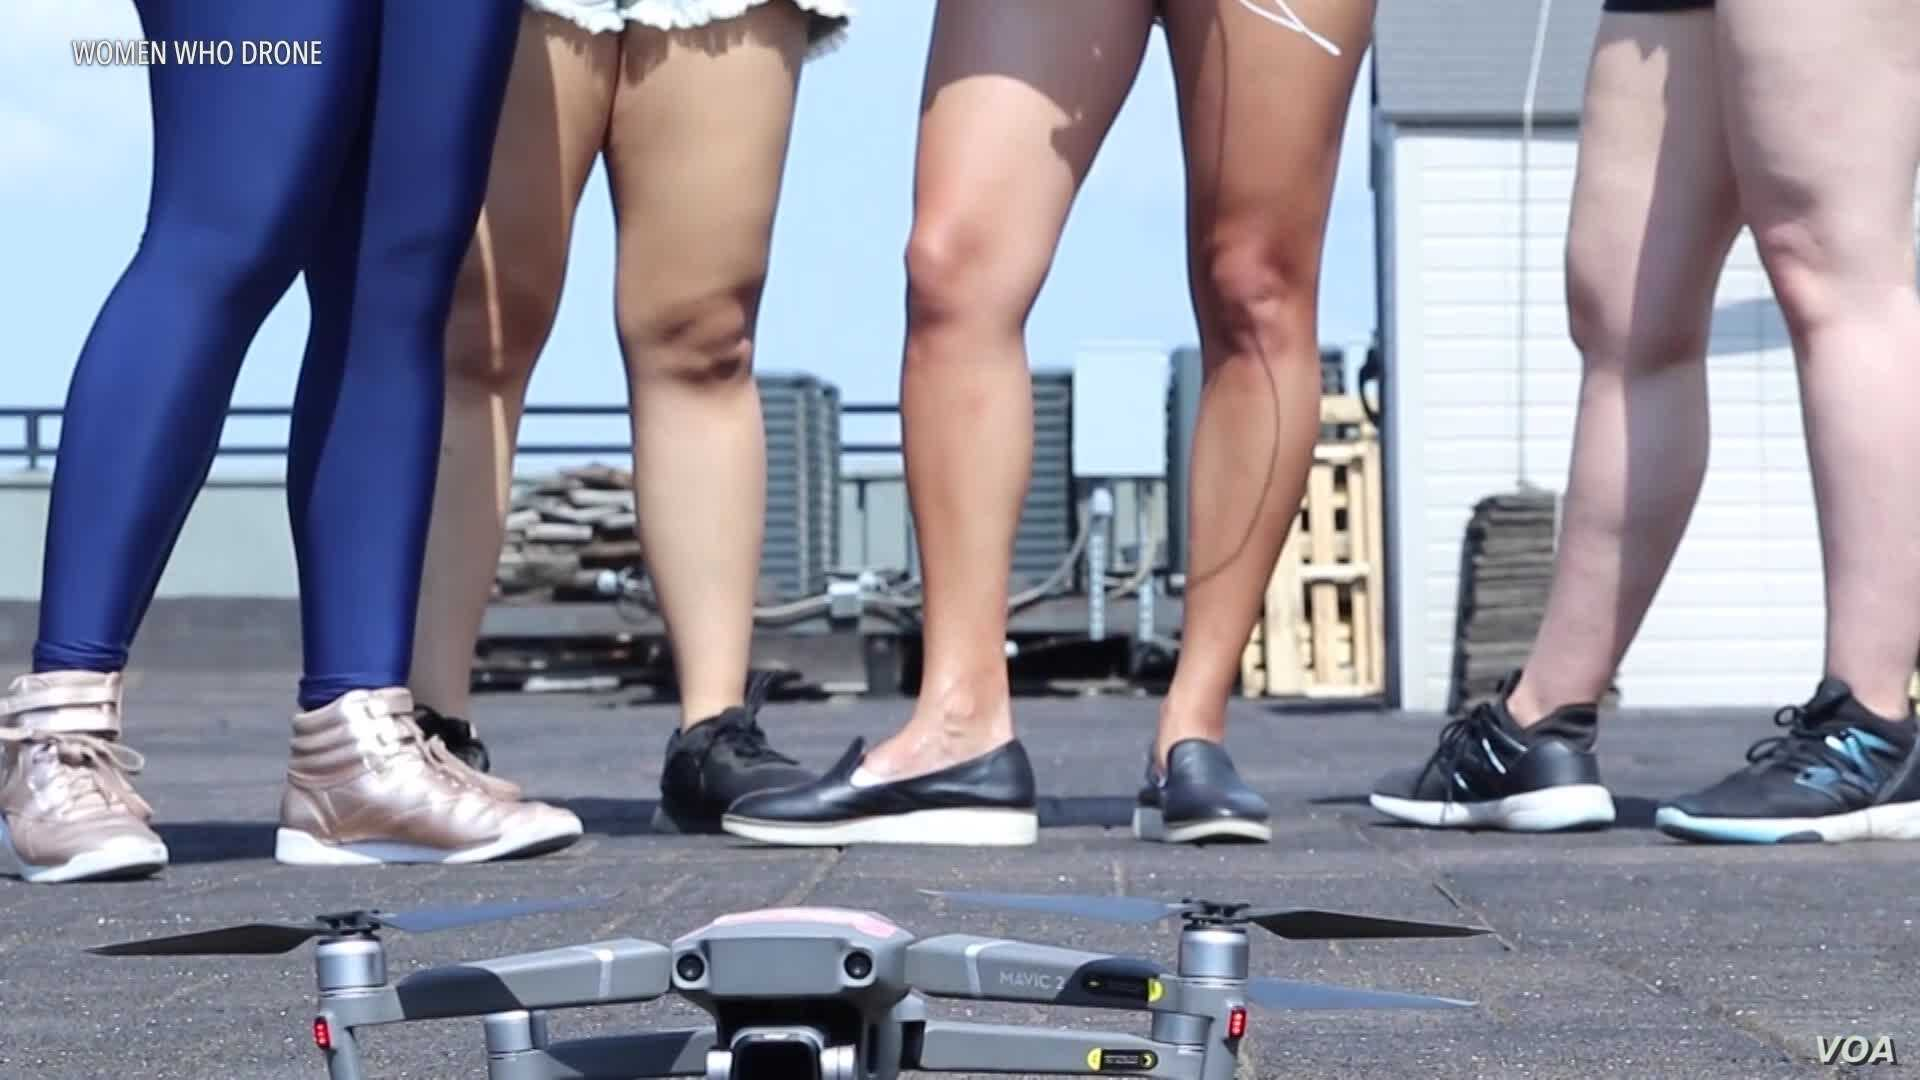 A Female Drone Community Blooms Despite Industry Attempt to Target Men